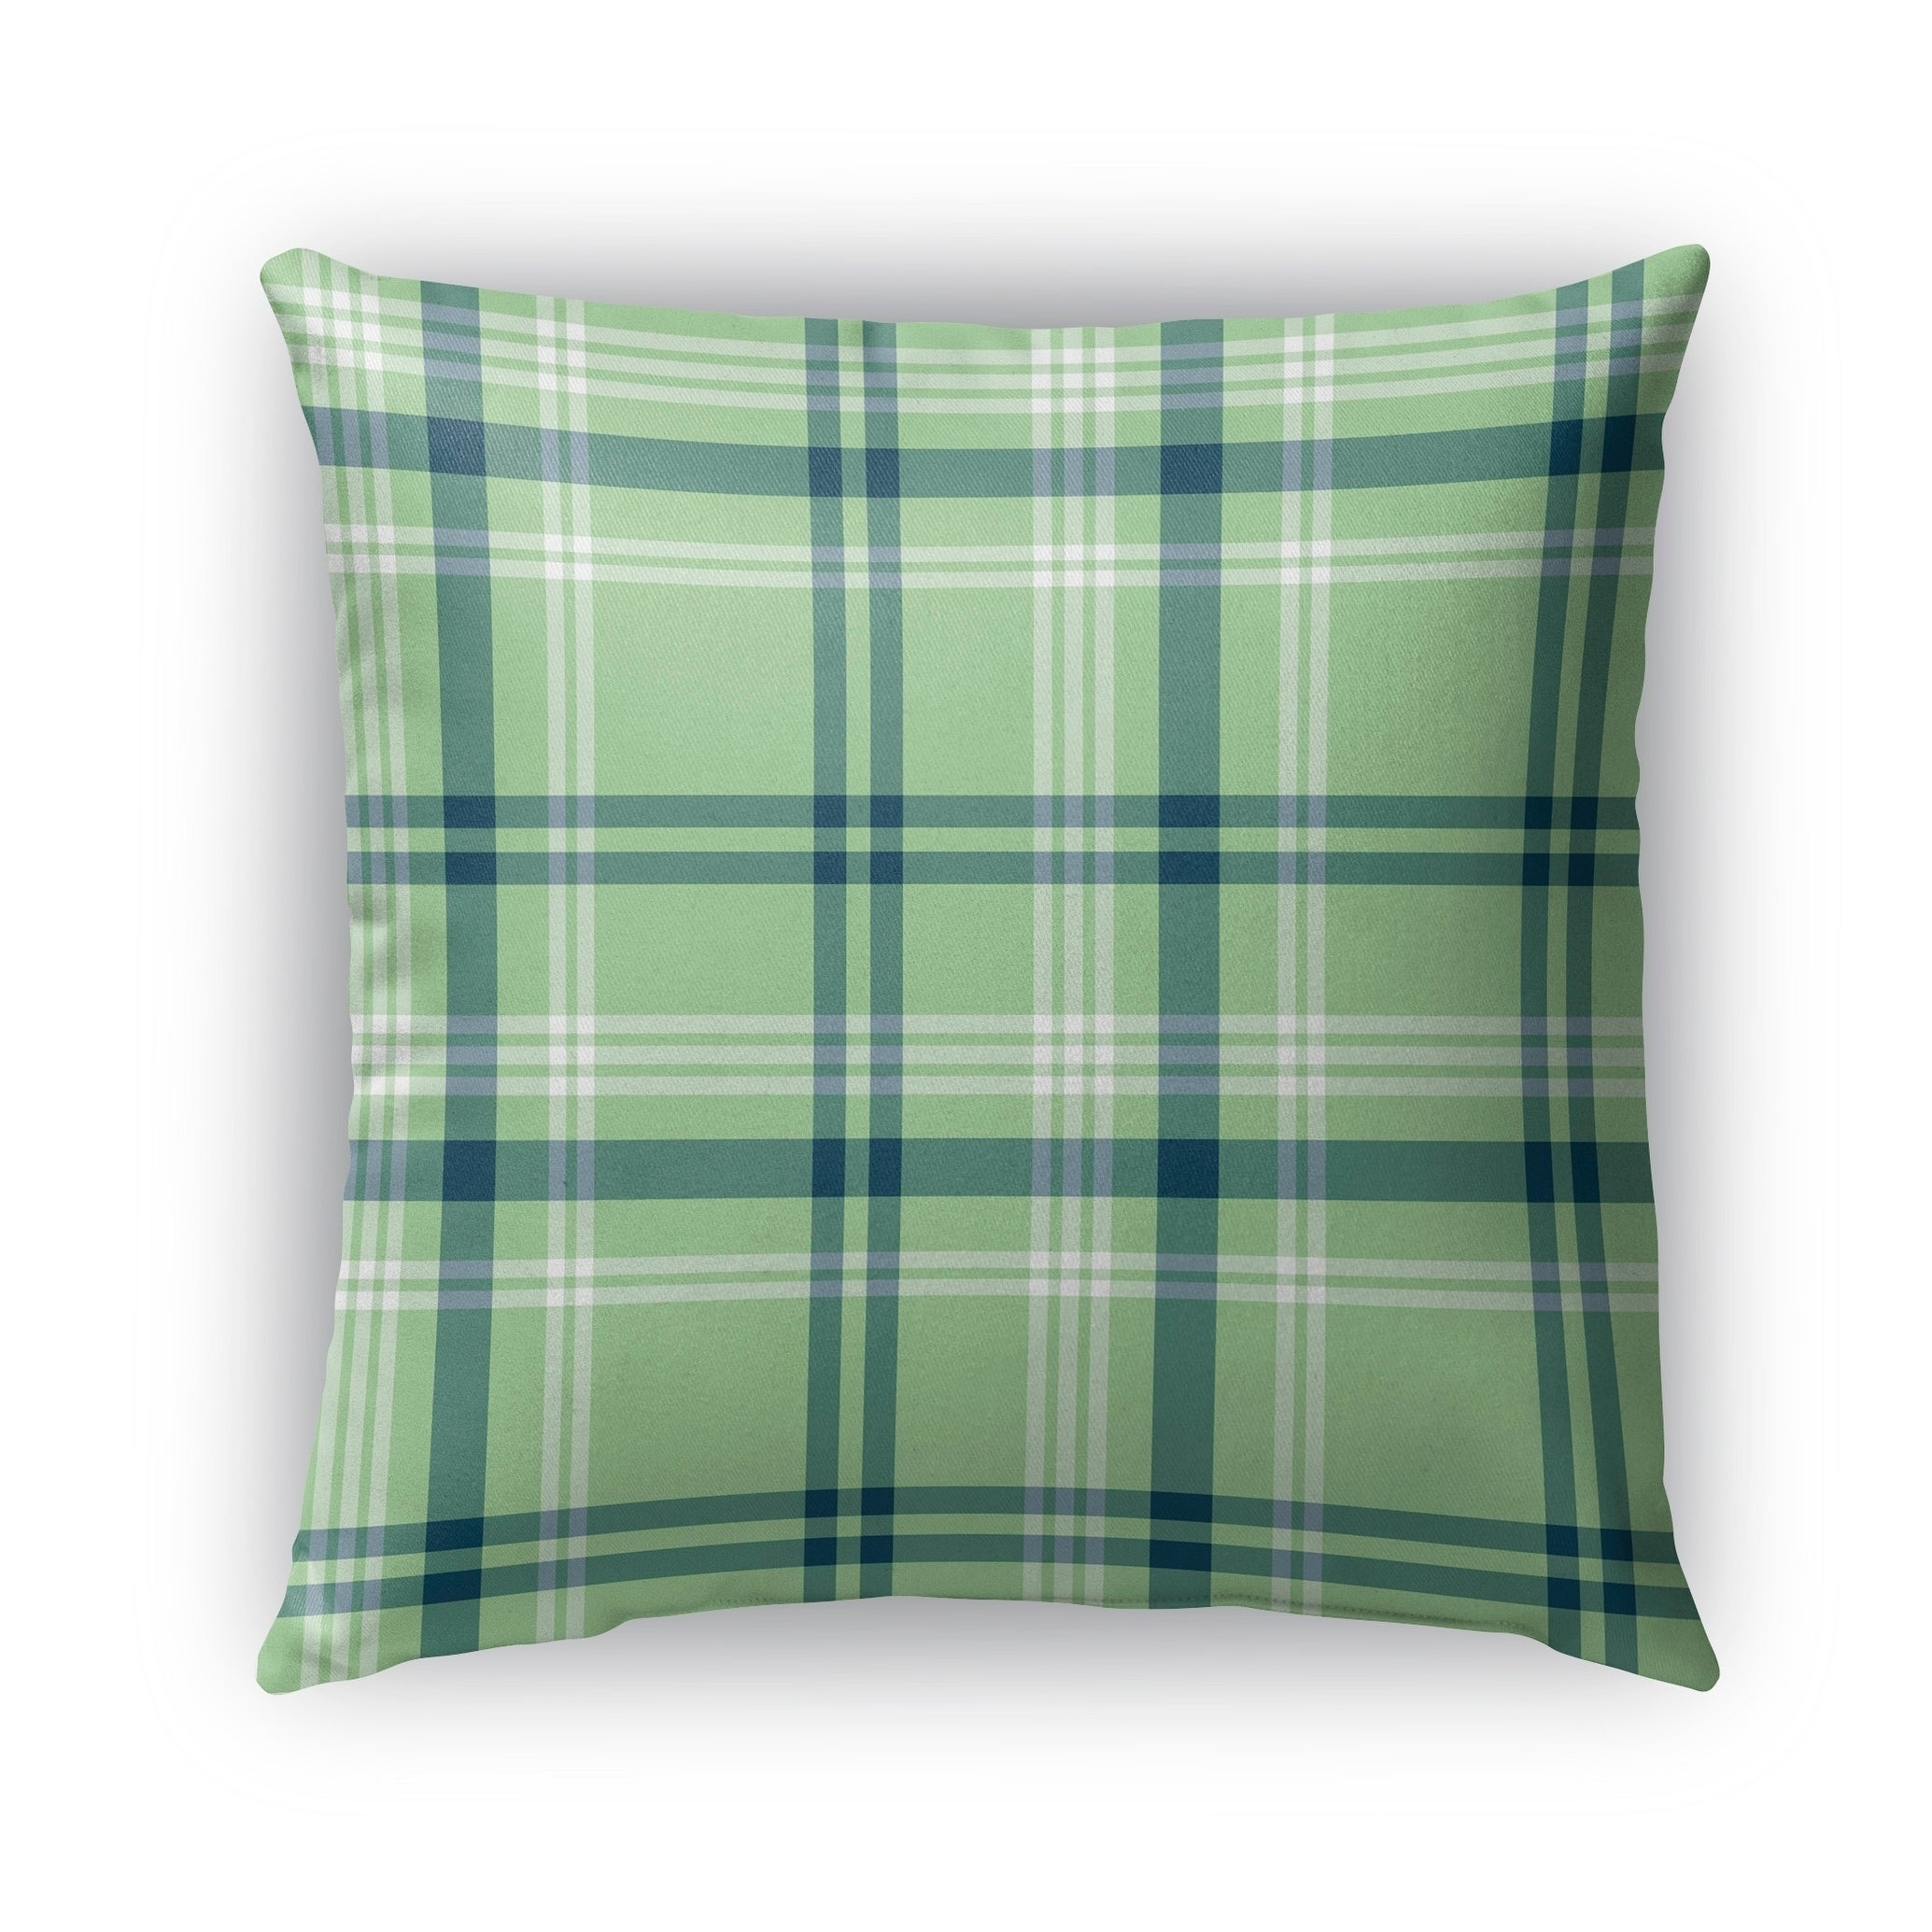 c26fa98c032 Shop Kavka Designs green  blue plaid coral navy mint outdoor pillow with  insert - Free Shipping On Orders Over  45 - Overstock - 16963441